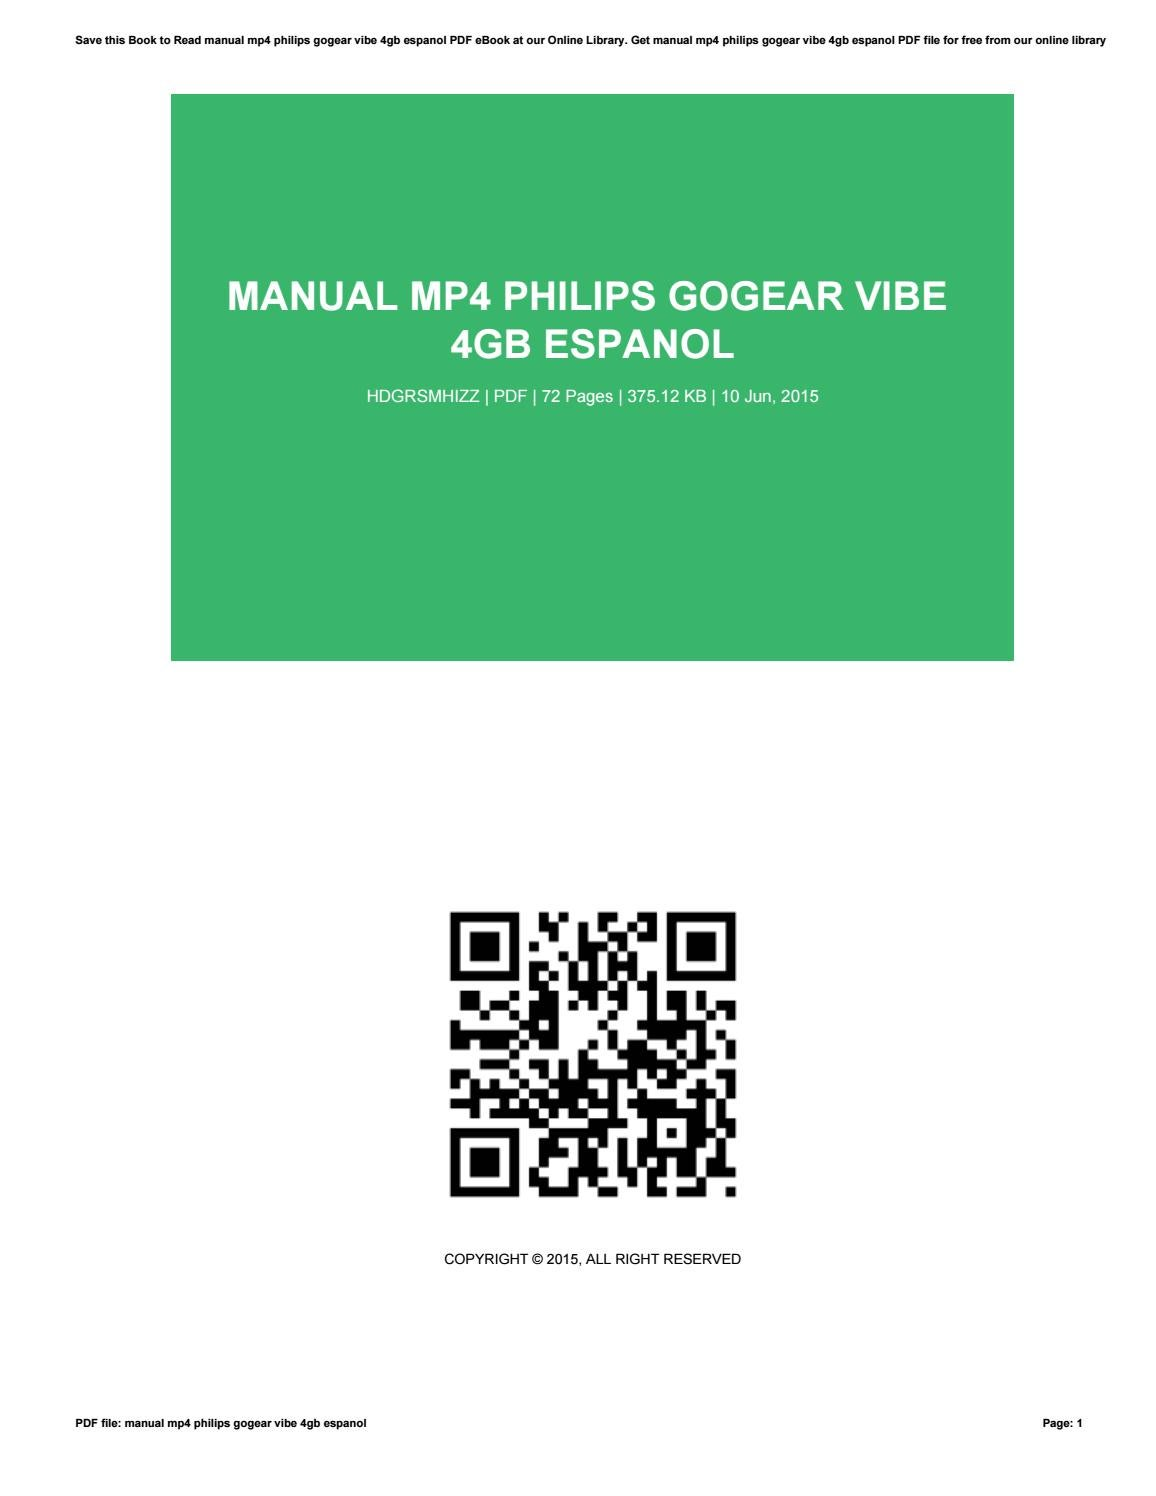 philips gogear manual 4gb ebook